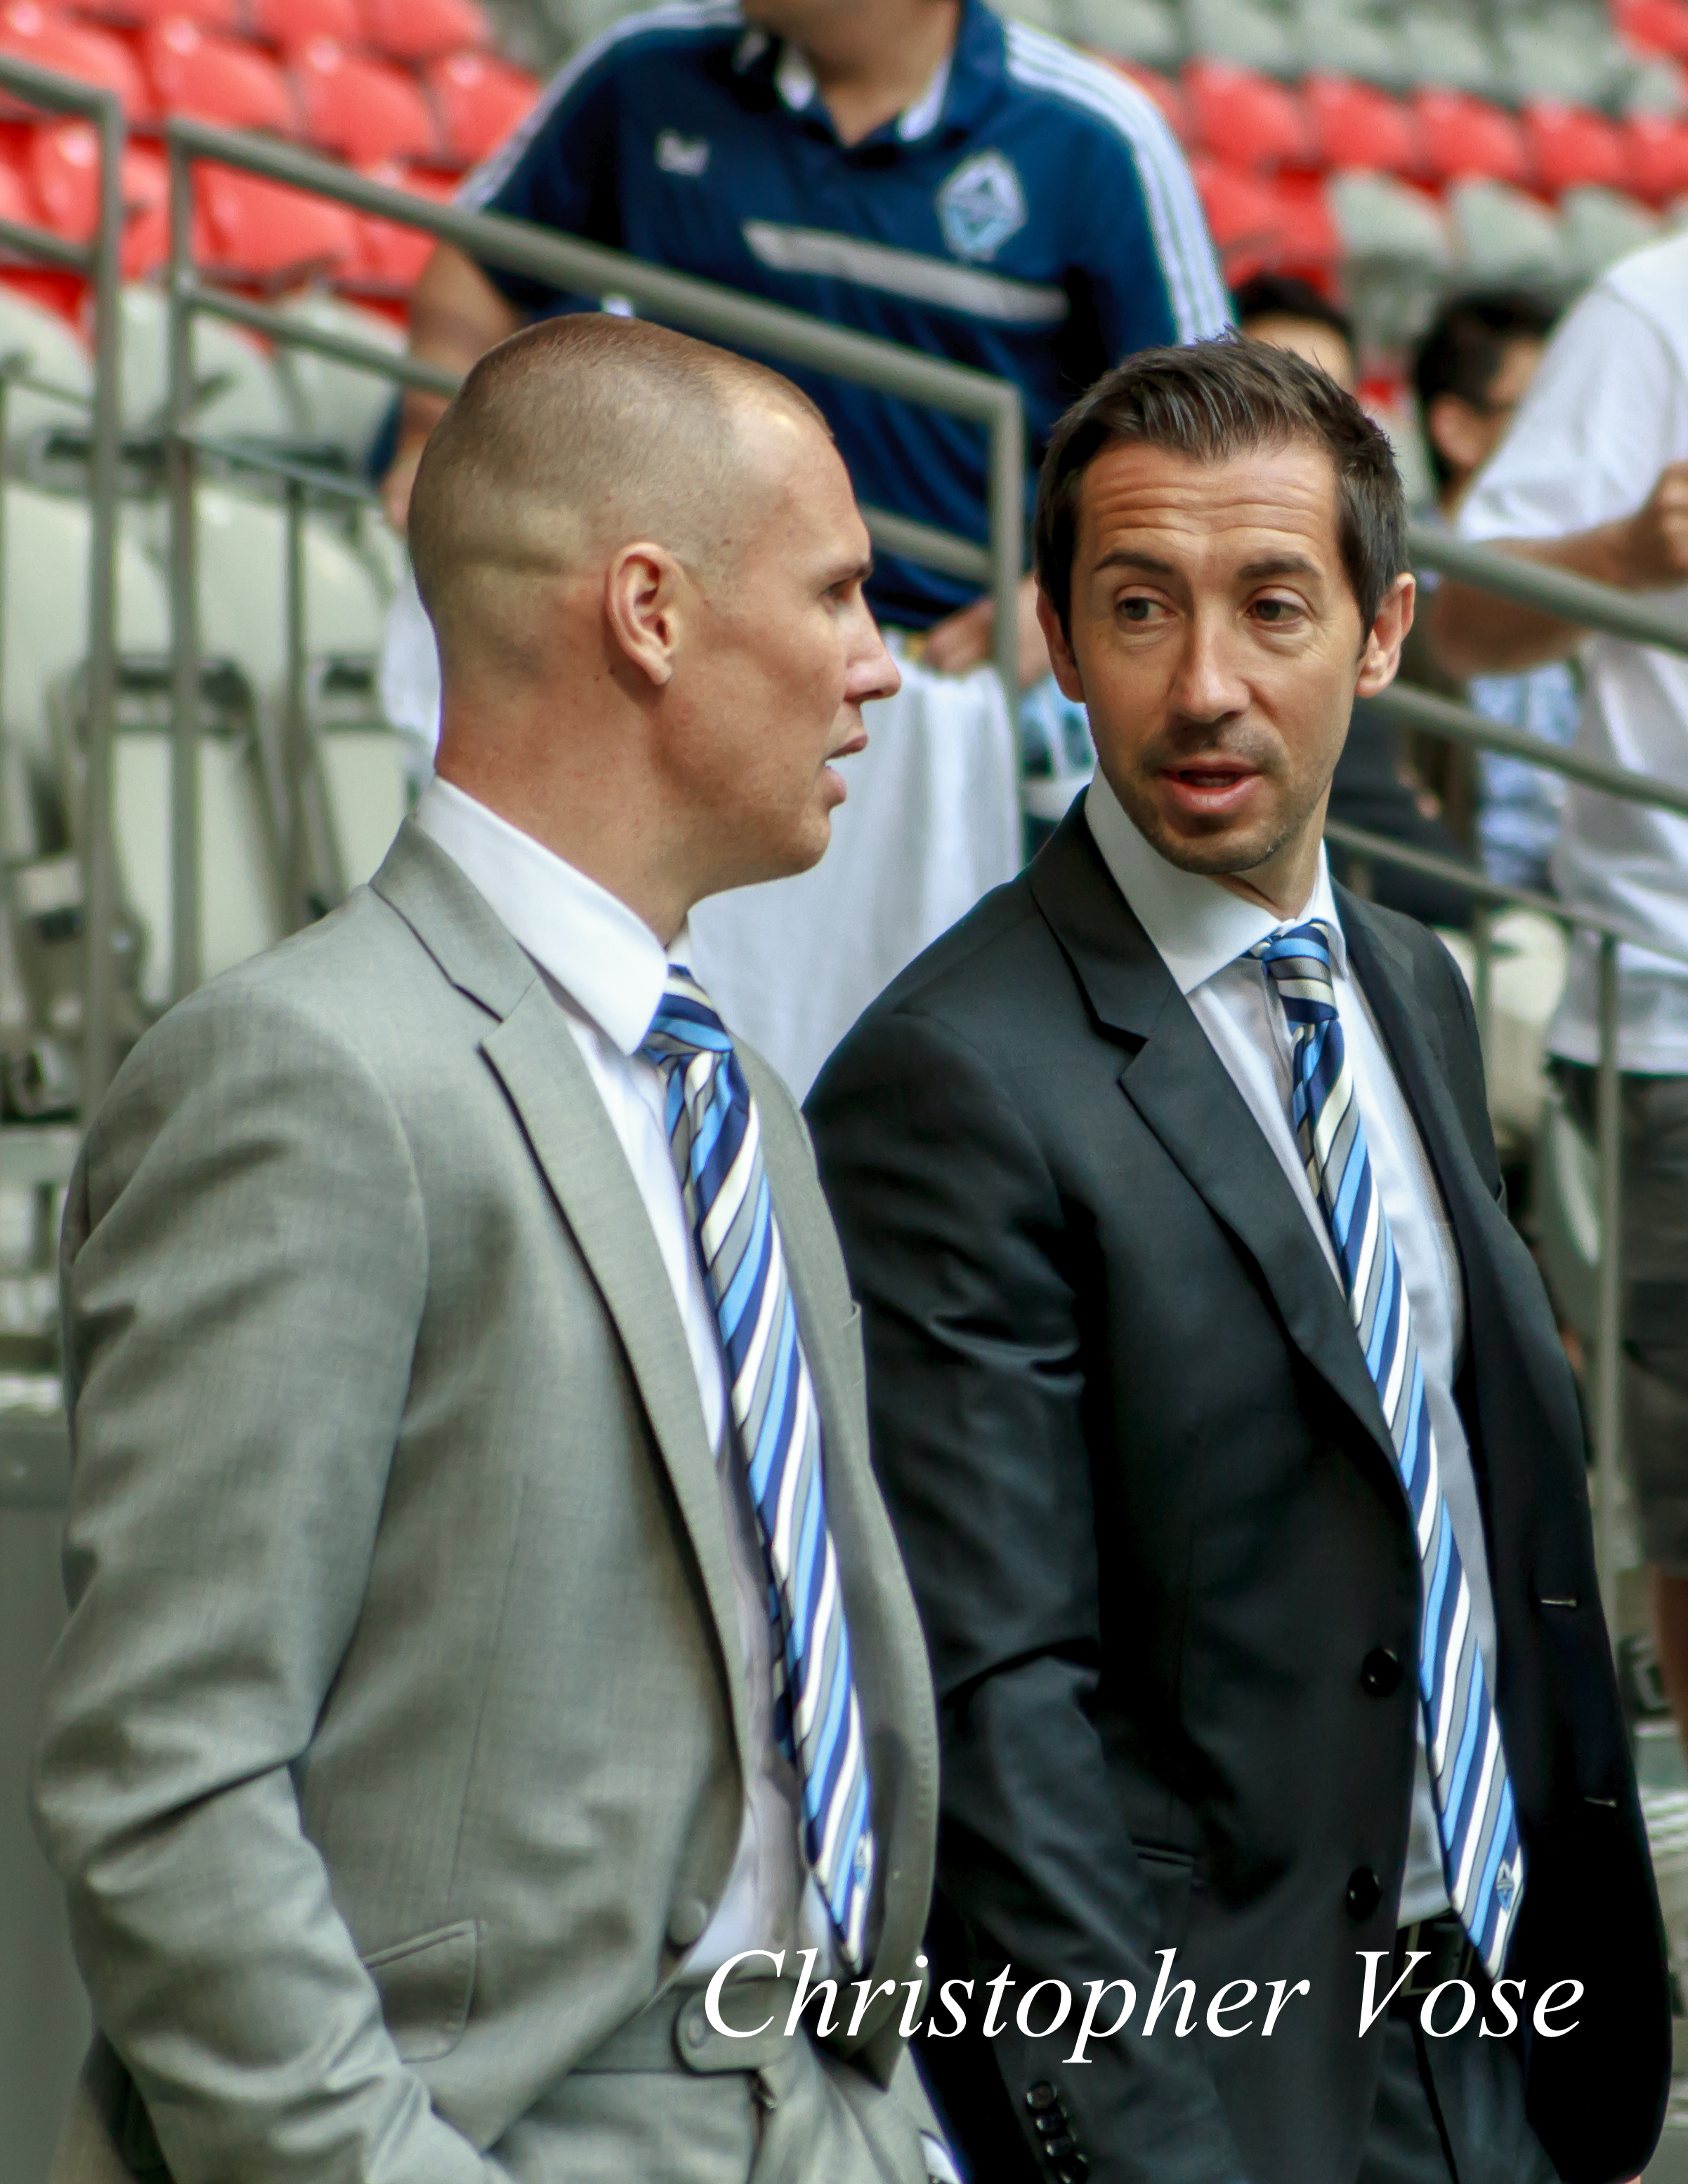 Kenny Miller and Martin Rennie look sharp as they enter BC Place on 11 May 2013.